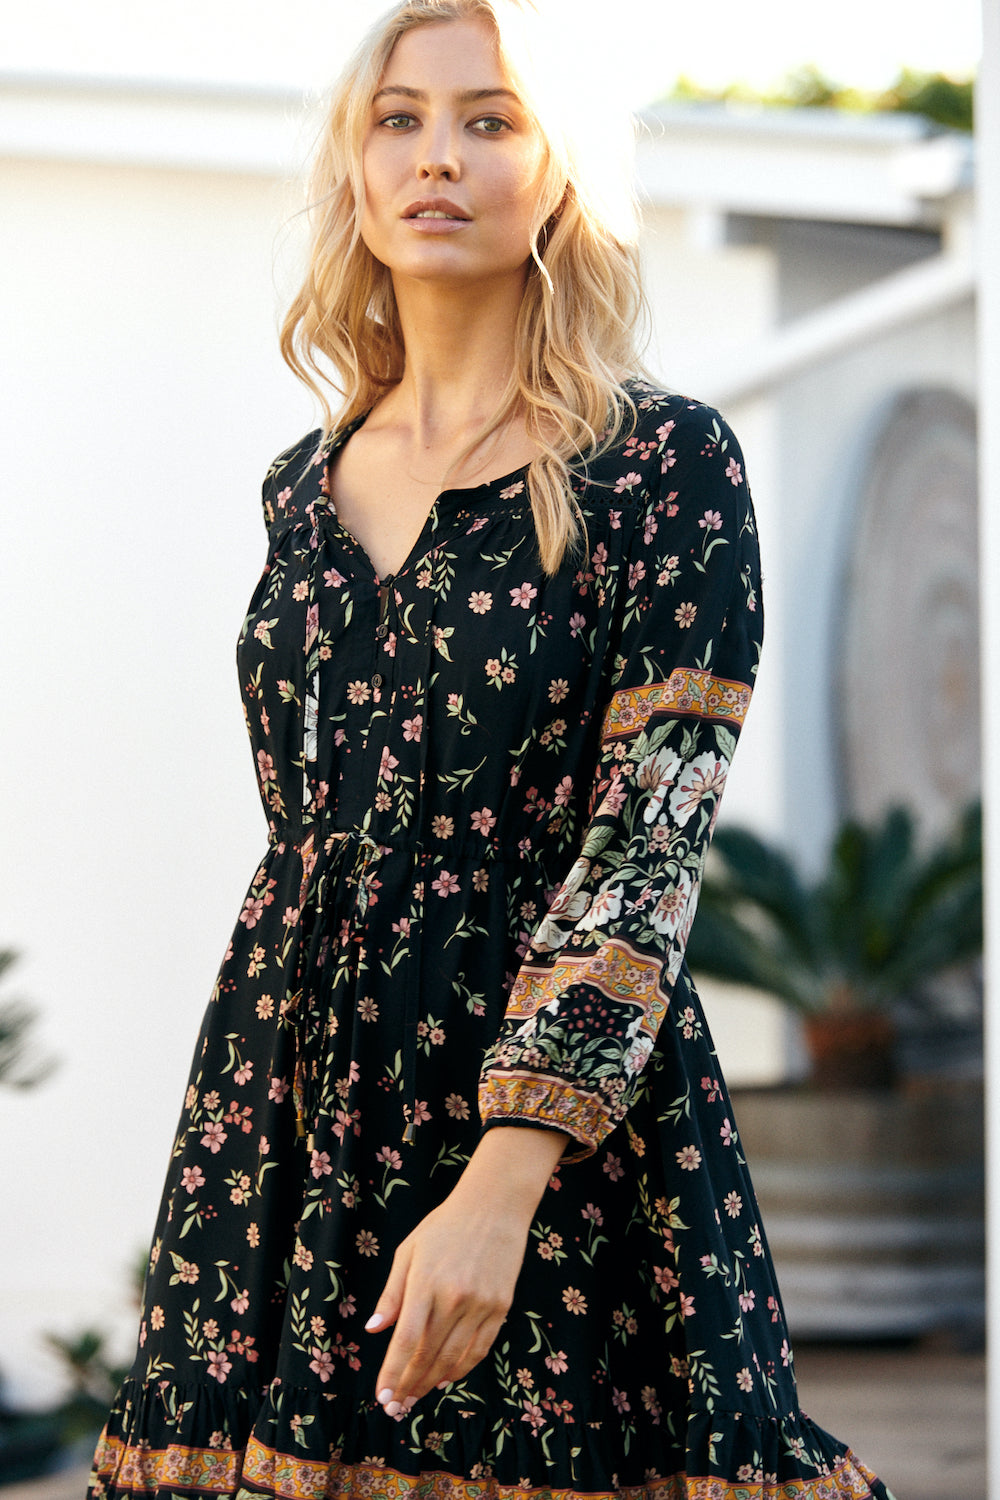 JAASE Olli Midi Dress in Eternity Print